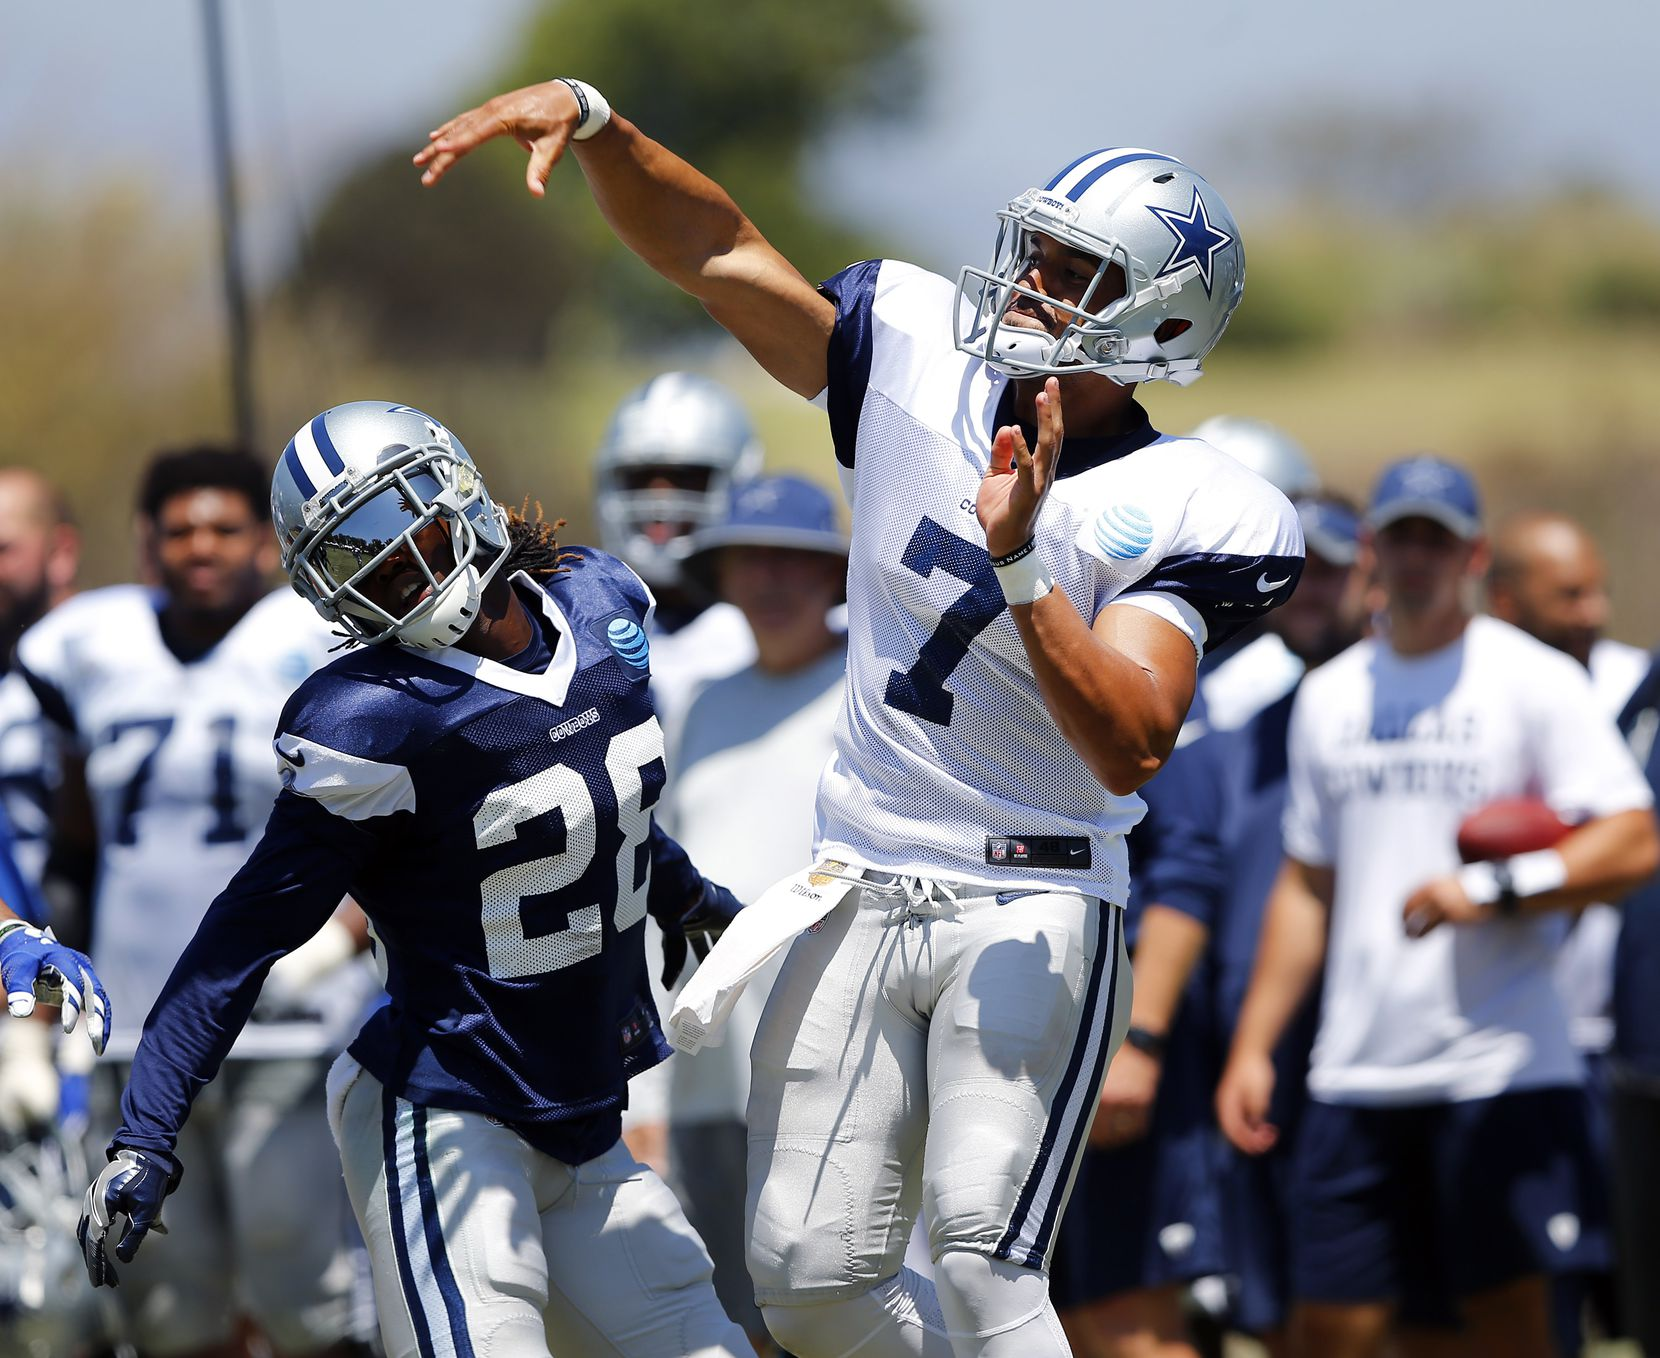 Dallas Cowboys quarterback Jameill Showers (7) releases a pass as defensive back Dax Swanson (28) pulls up on the pass rush during morning practice at training camp in Oxnard, California, Thursday, August 11, 2016. (Tom Fox/The Dallas Morning News)